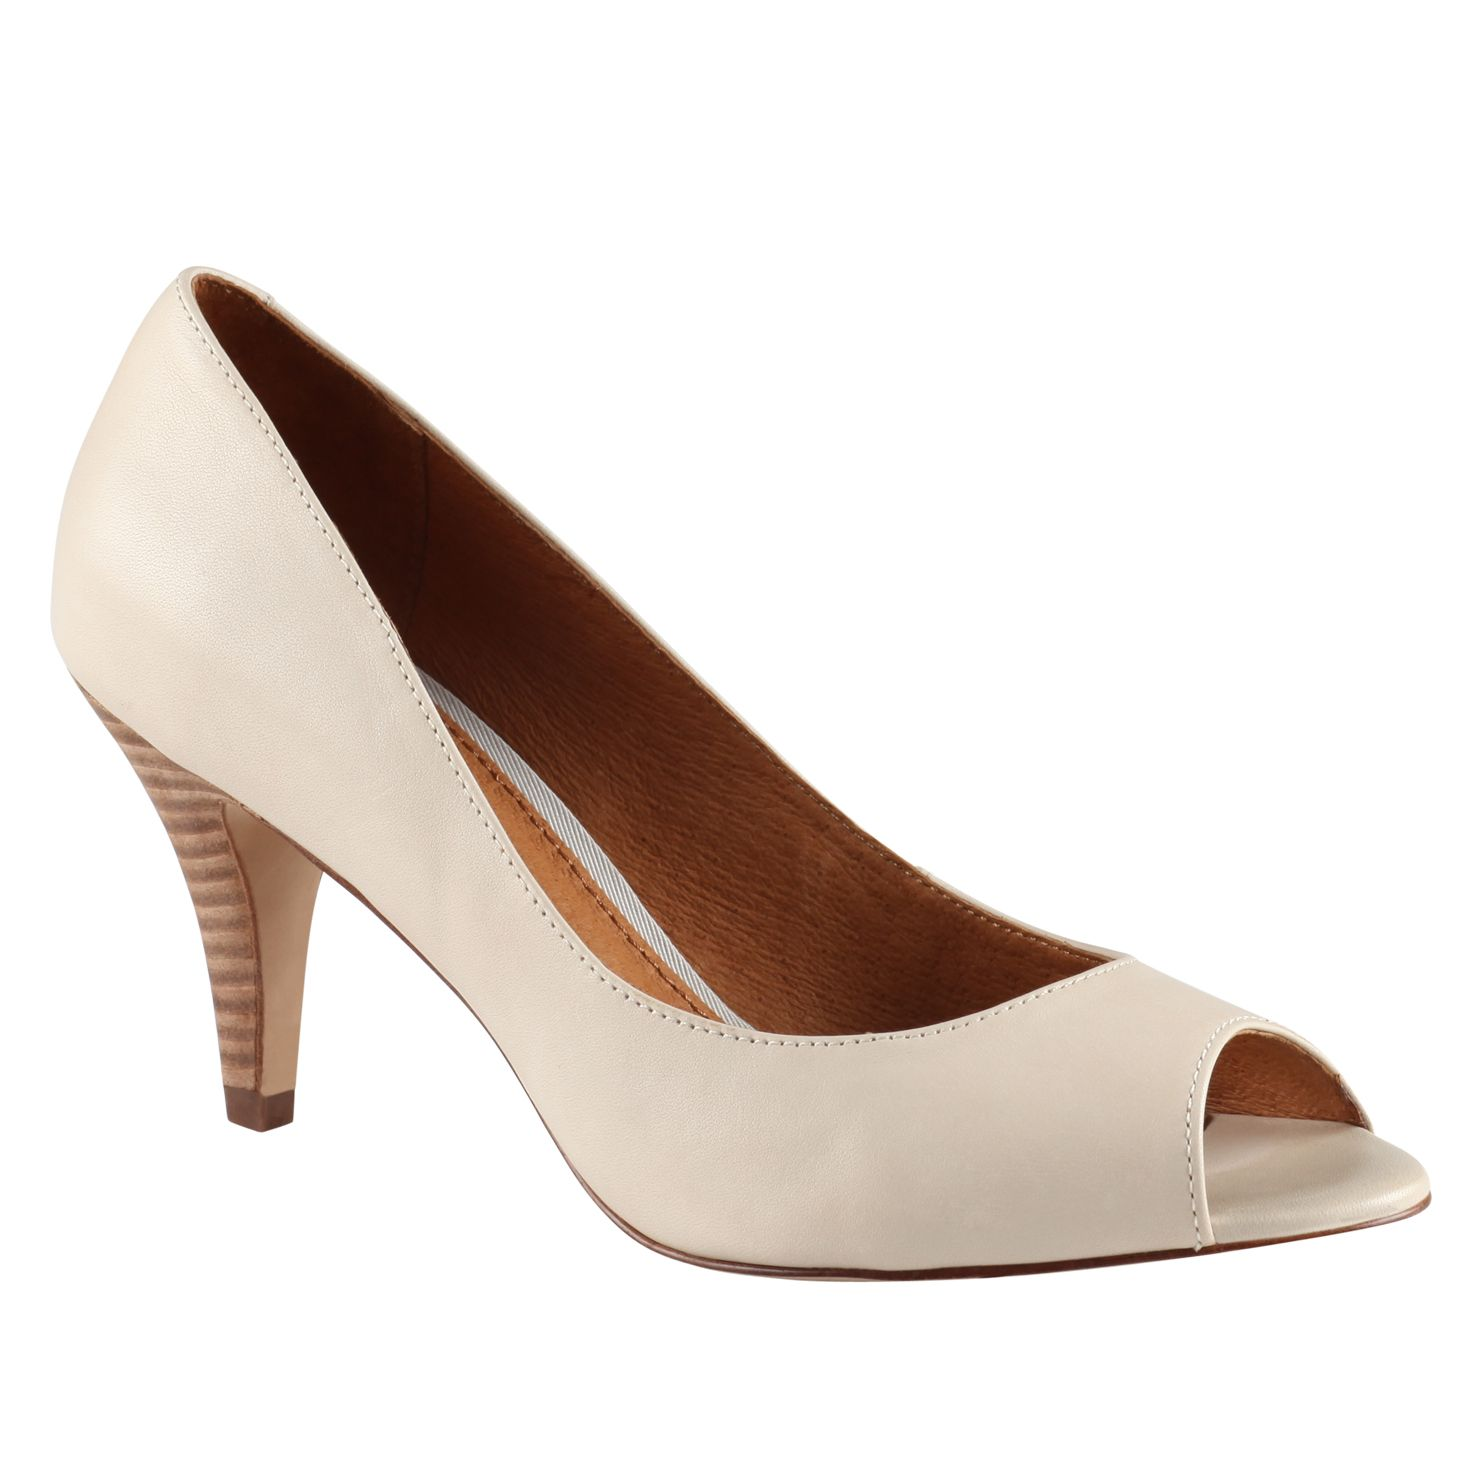 Karise Peep Toe Court Shoes